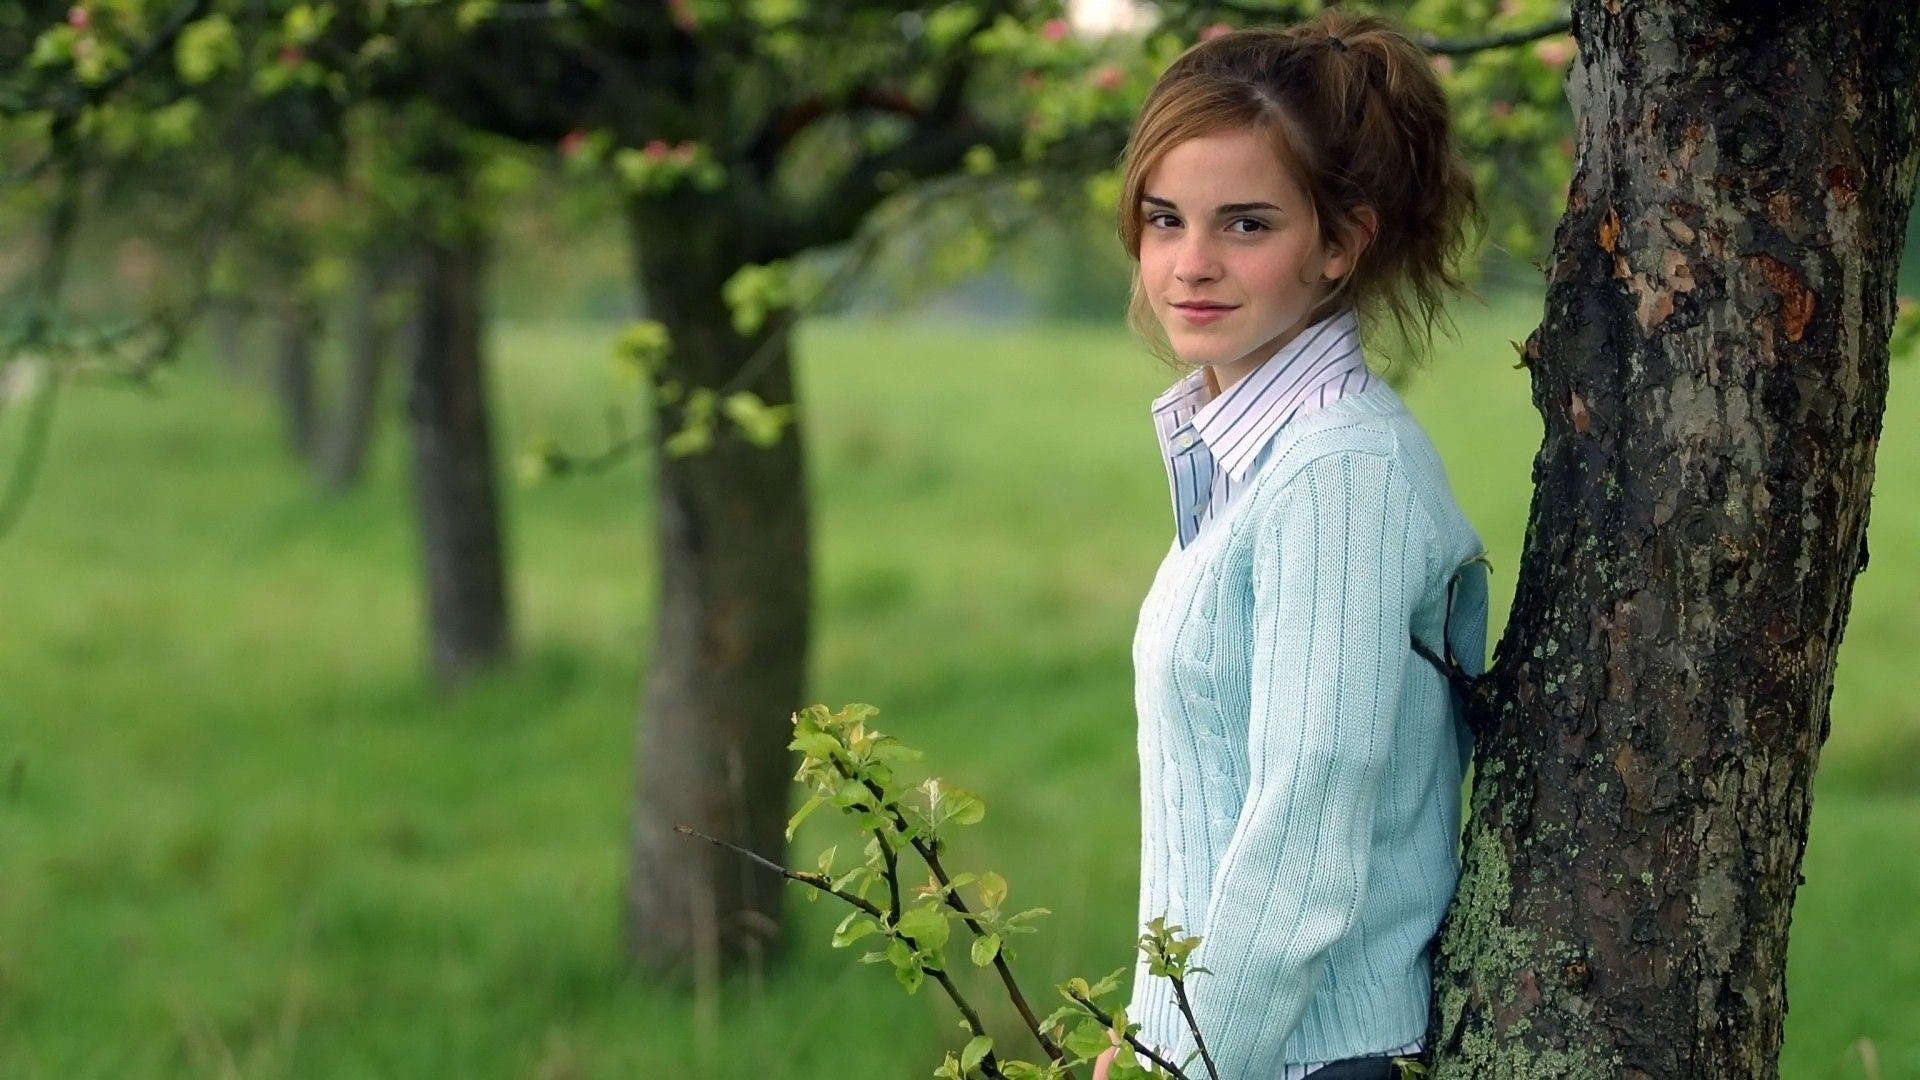 Emma Watson Wallpapers | Free Download HD Hot Beautiful Actress Images